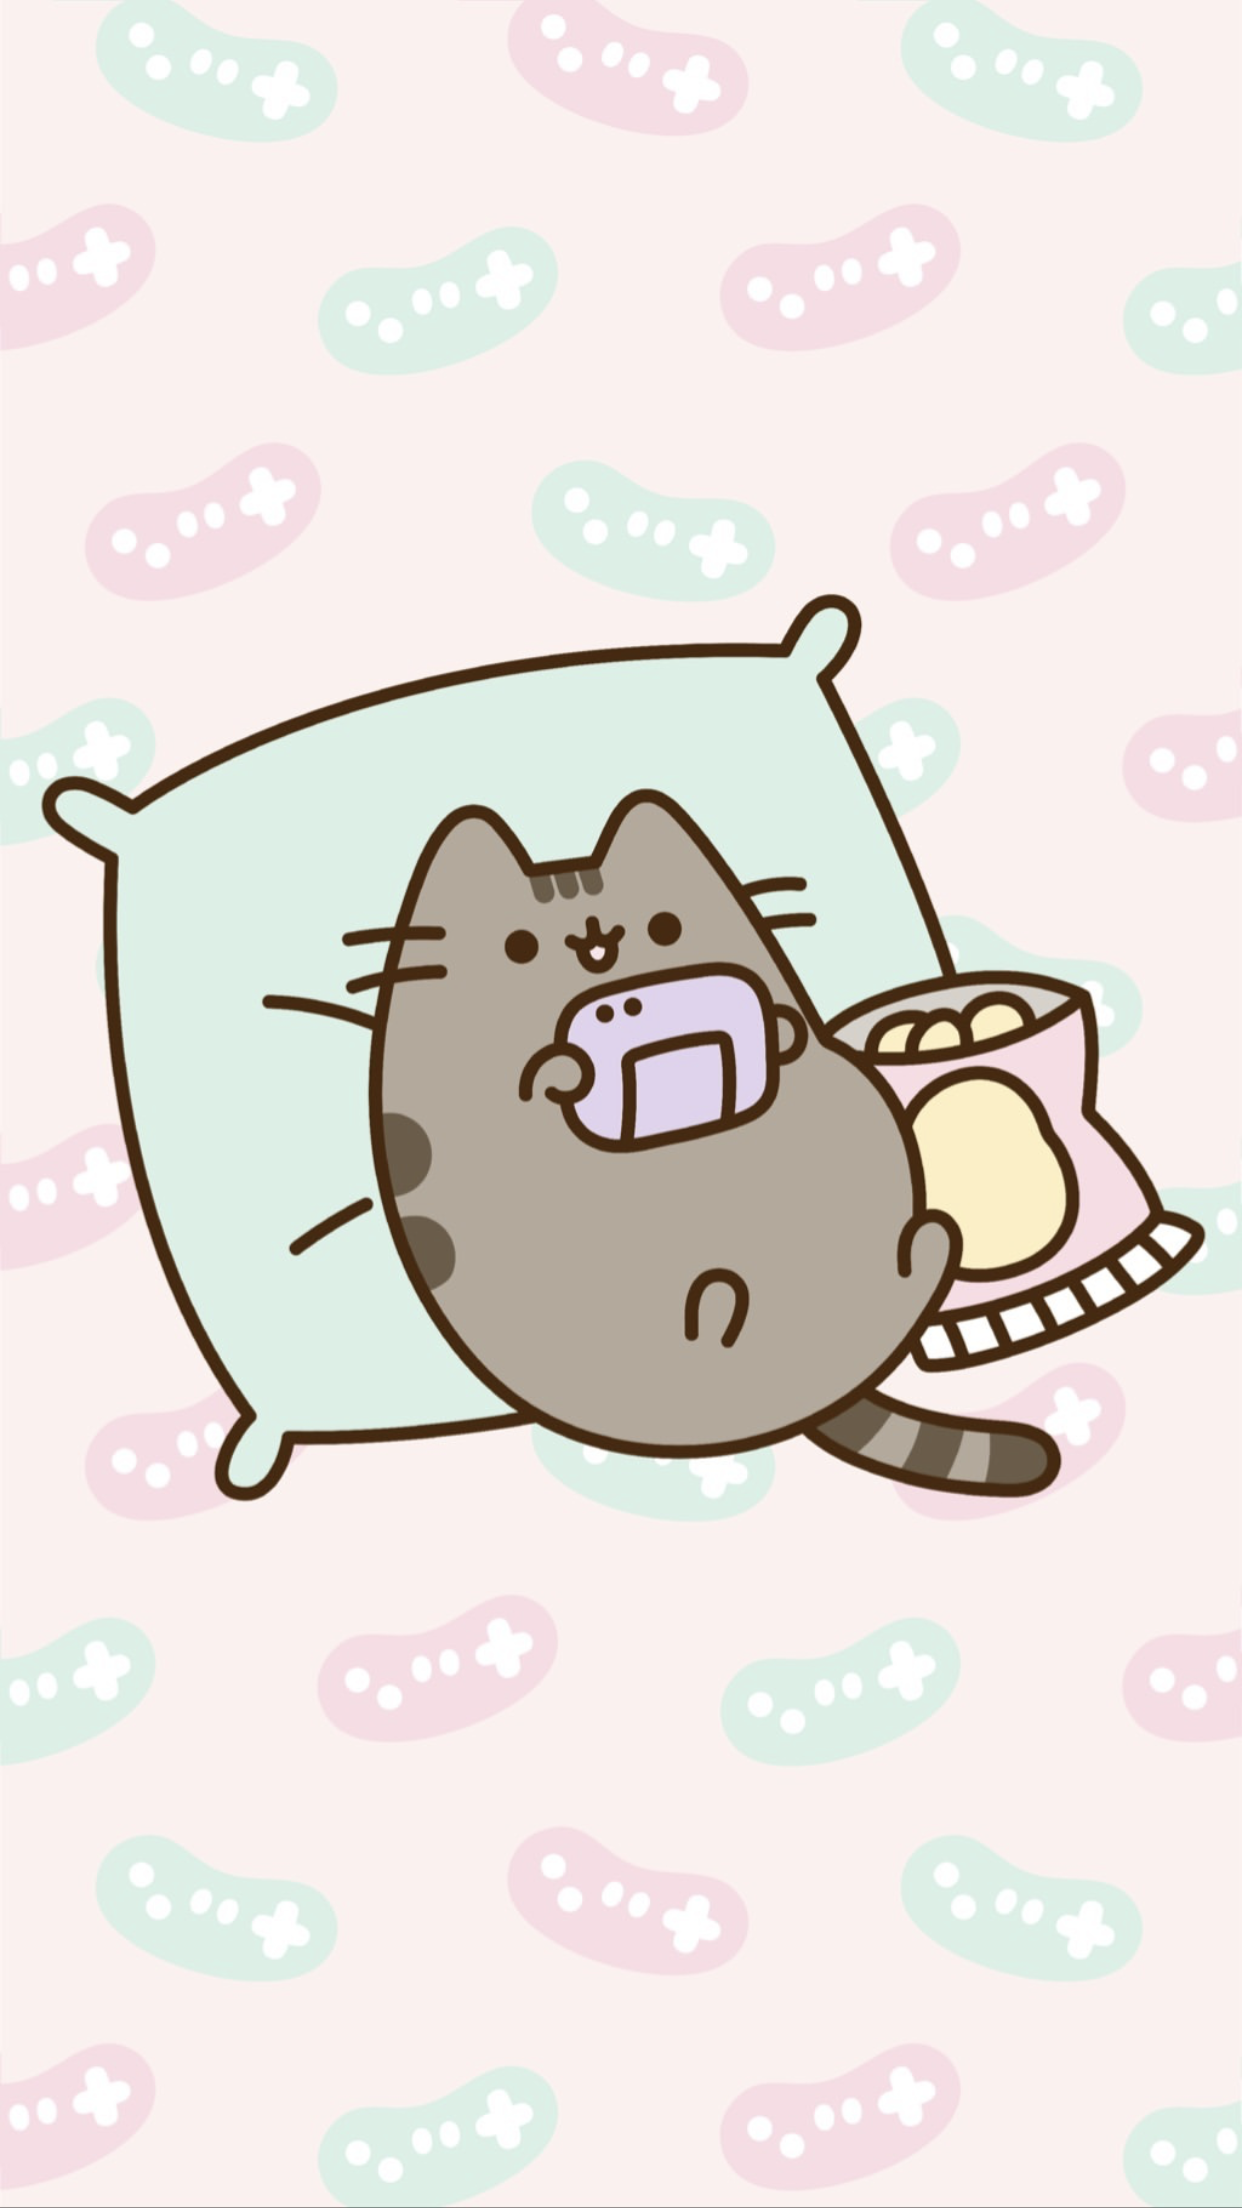 Pusheen The Cat Iphone Wallpaper Background Pusheen Gamer Kitty Pusheen Cute Pusheen Cat Kawaii Wallpaper